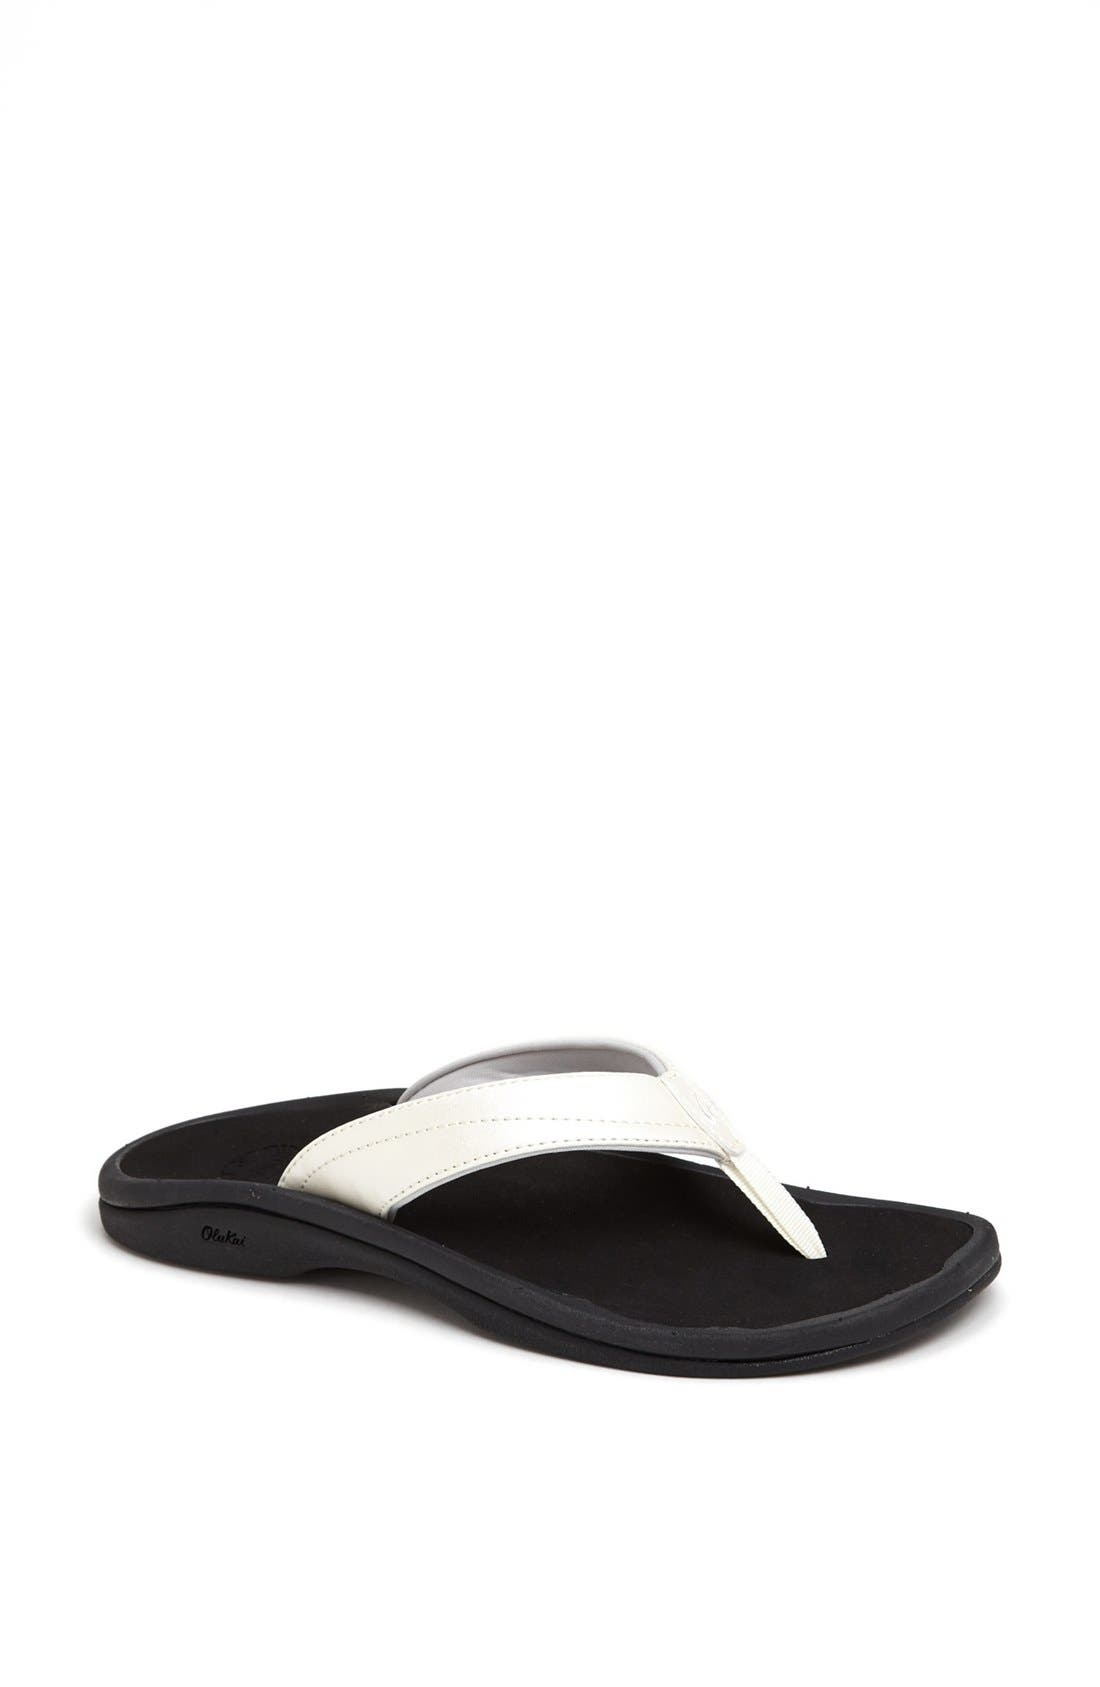 Alternate Image 1 Selected - OluKai 'Ohana' Sandal (Women)